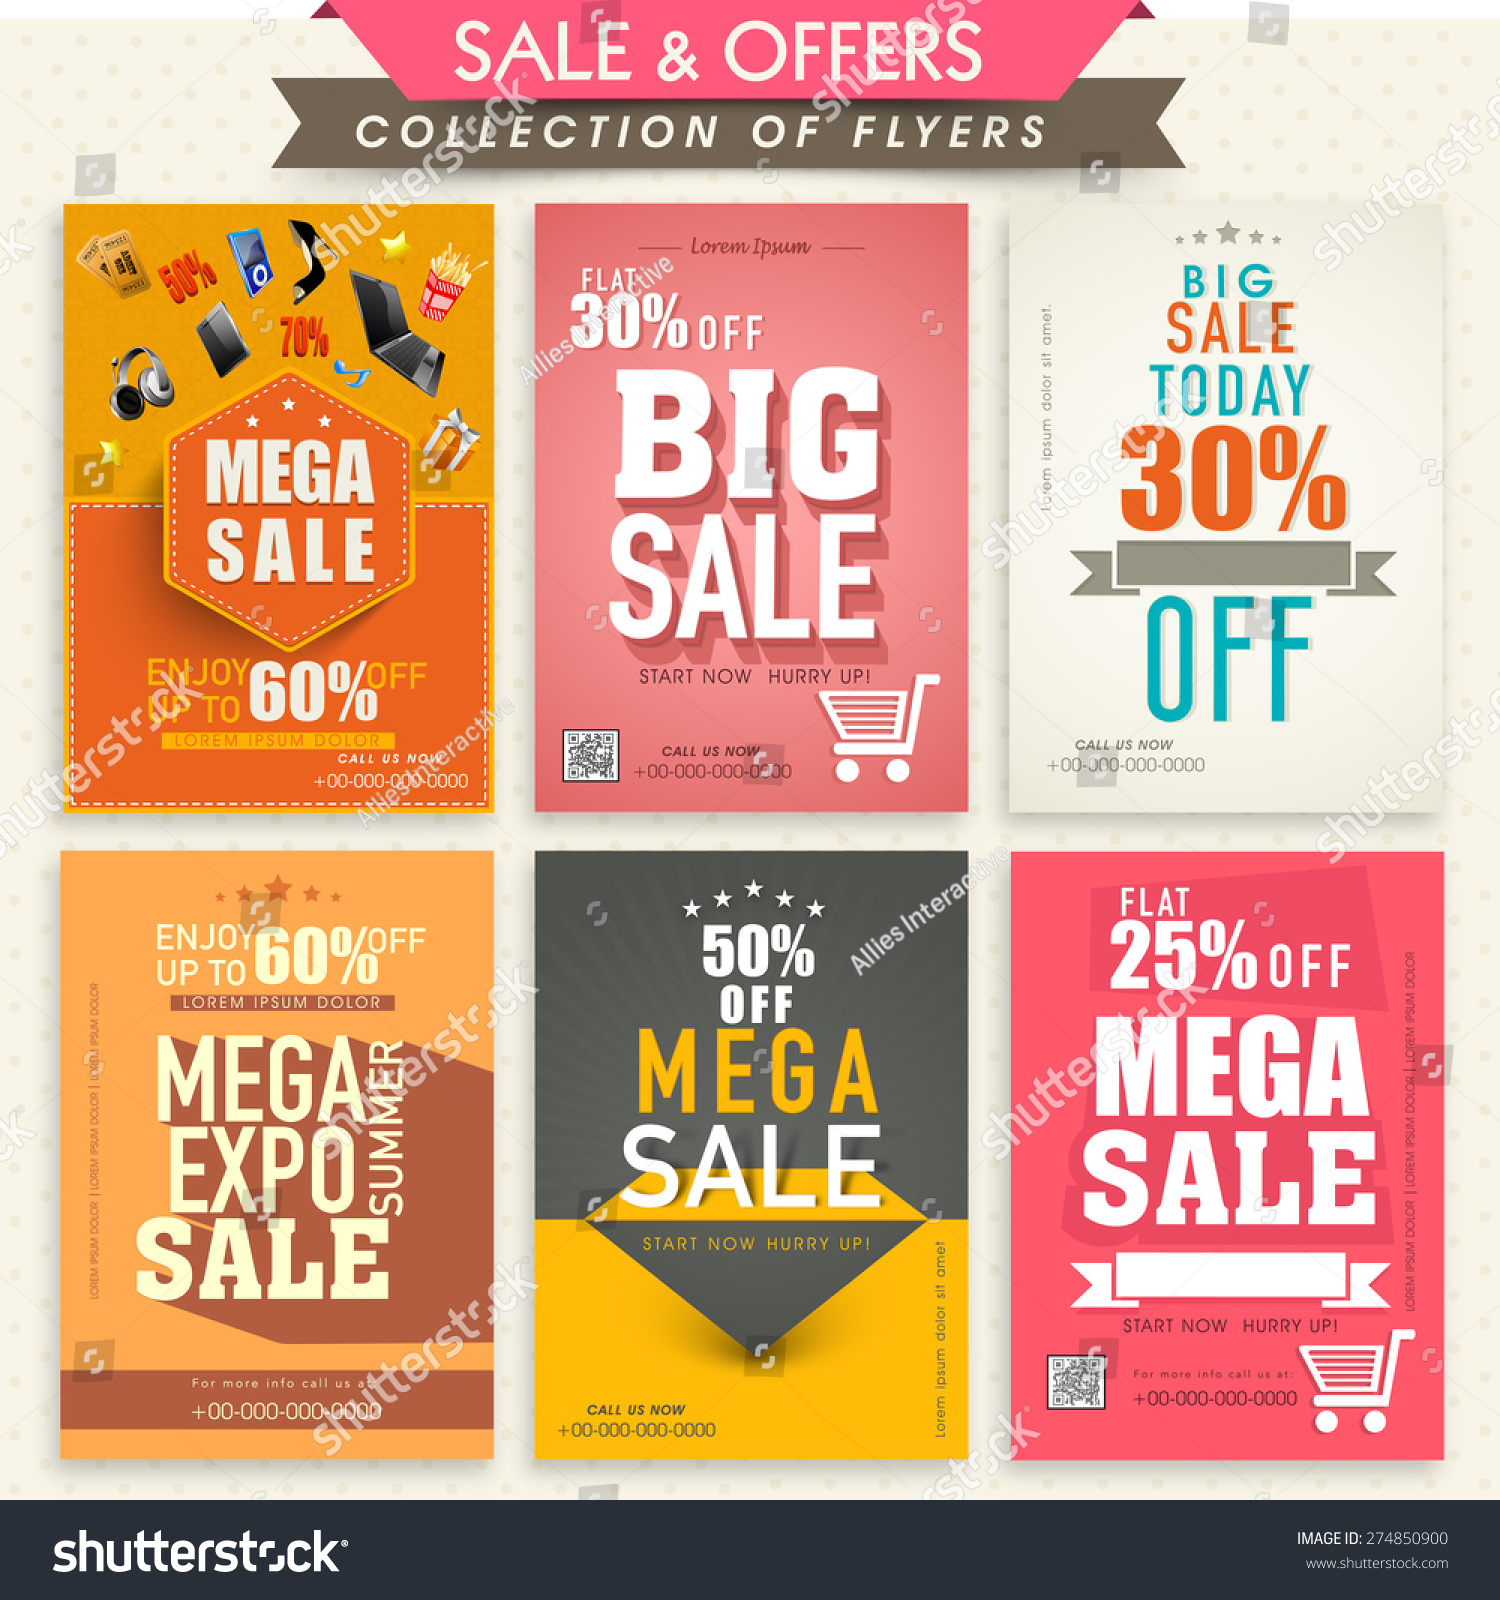 collection stylish mega flyers attractive stock vector collection of stylish mega flyers attractive discount offers